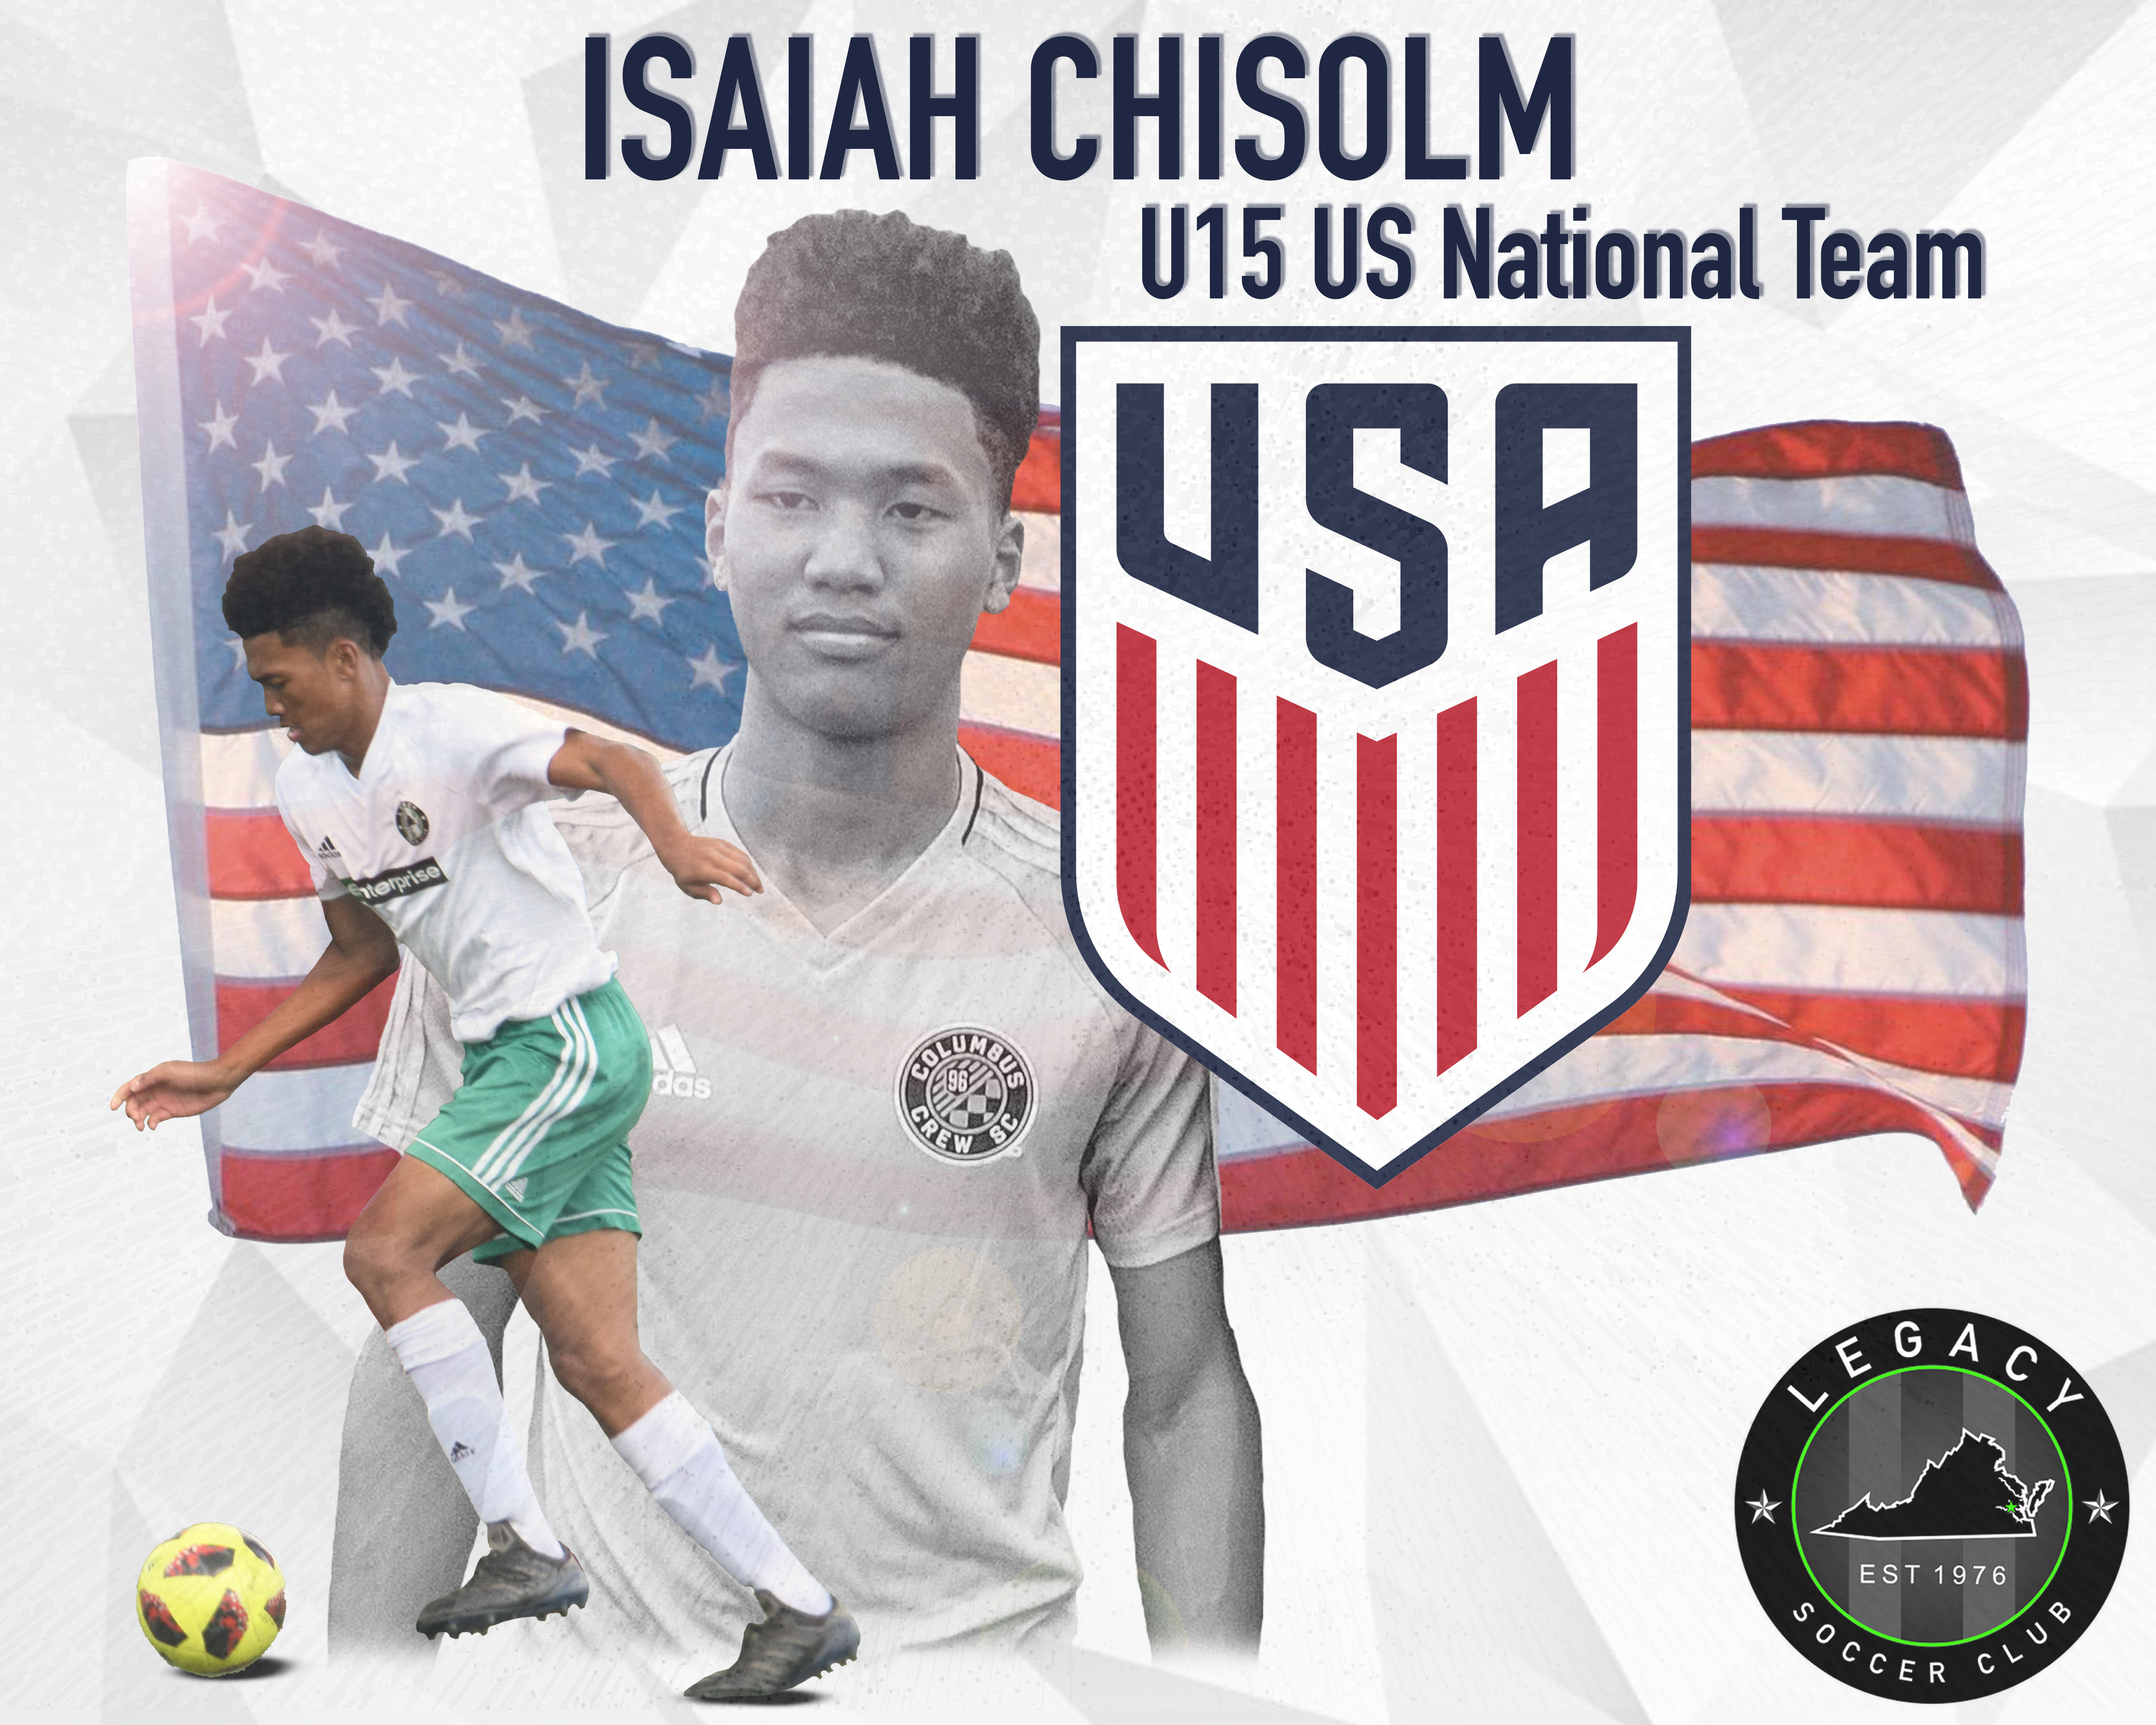 Isaiah Chisolm Selected to U15 Youth US National Team